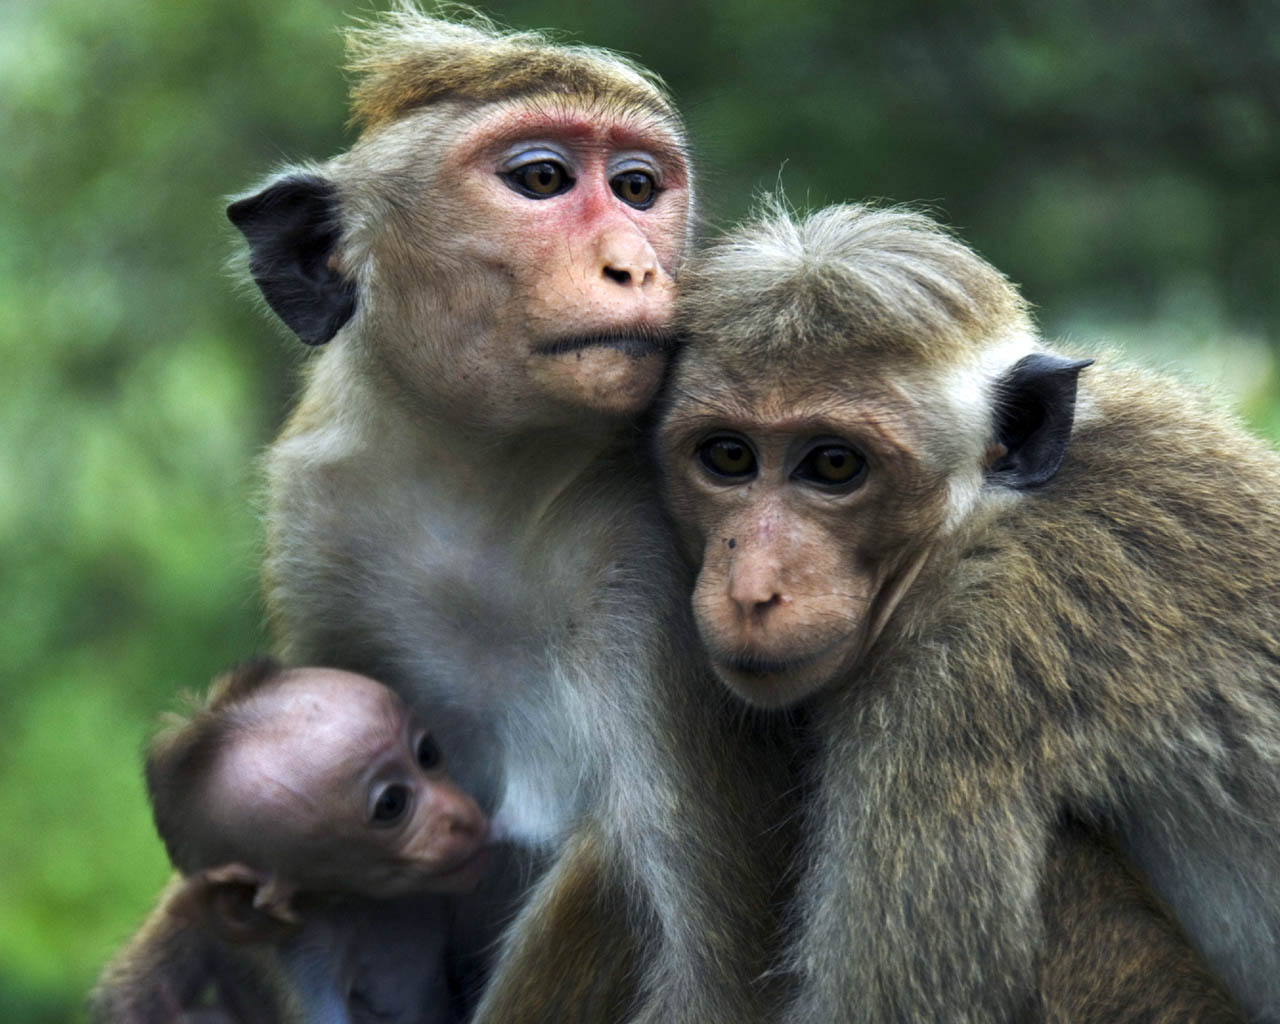 Cute Baby Monkeys 9929 Hd Wallpapers In Animals Imagescicom 1280x1024